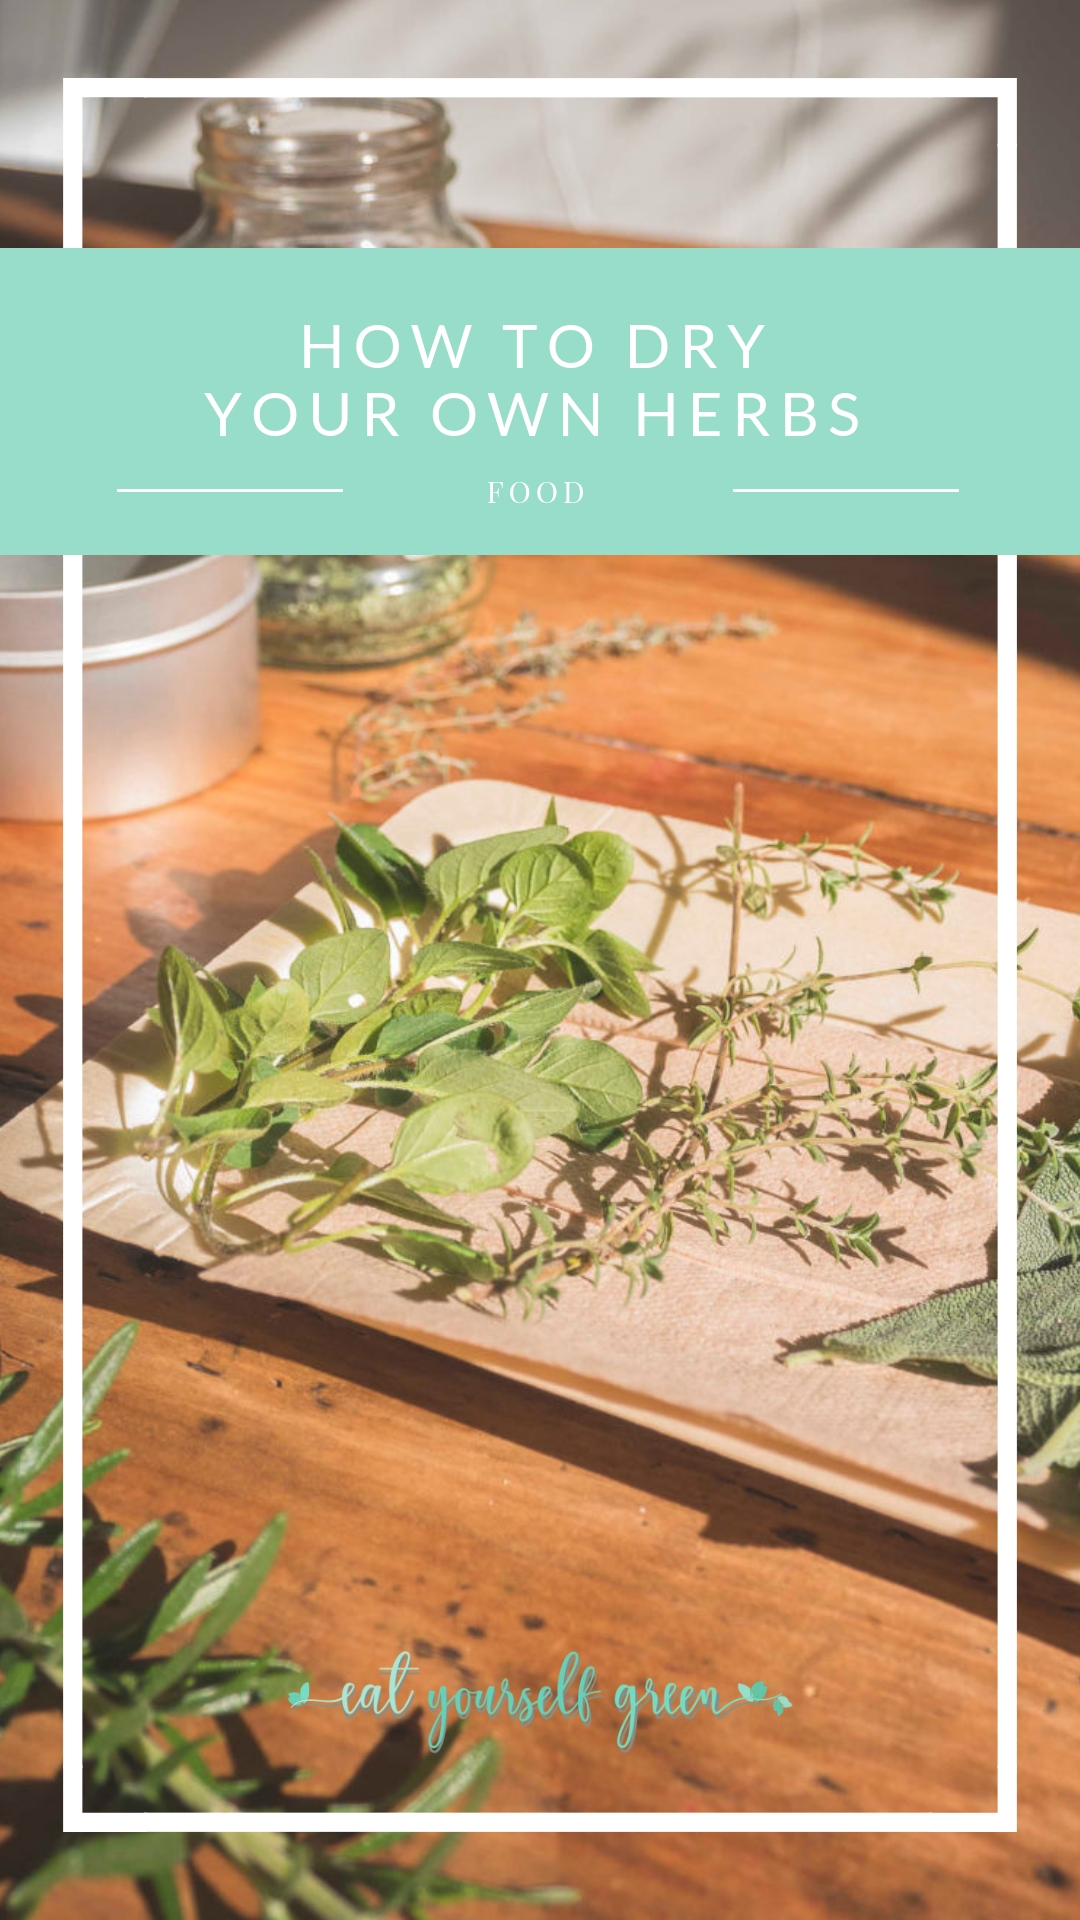 How to Dry Your Own Herbs | Eat Yourself Green